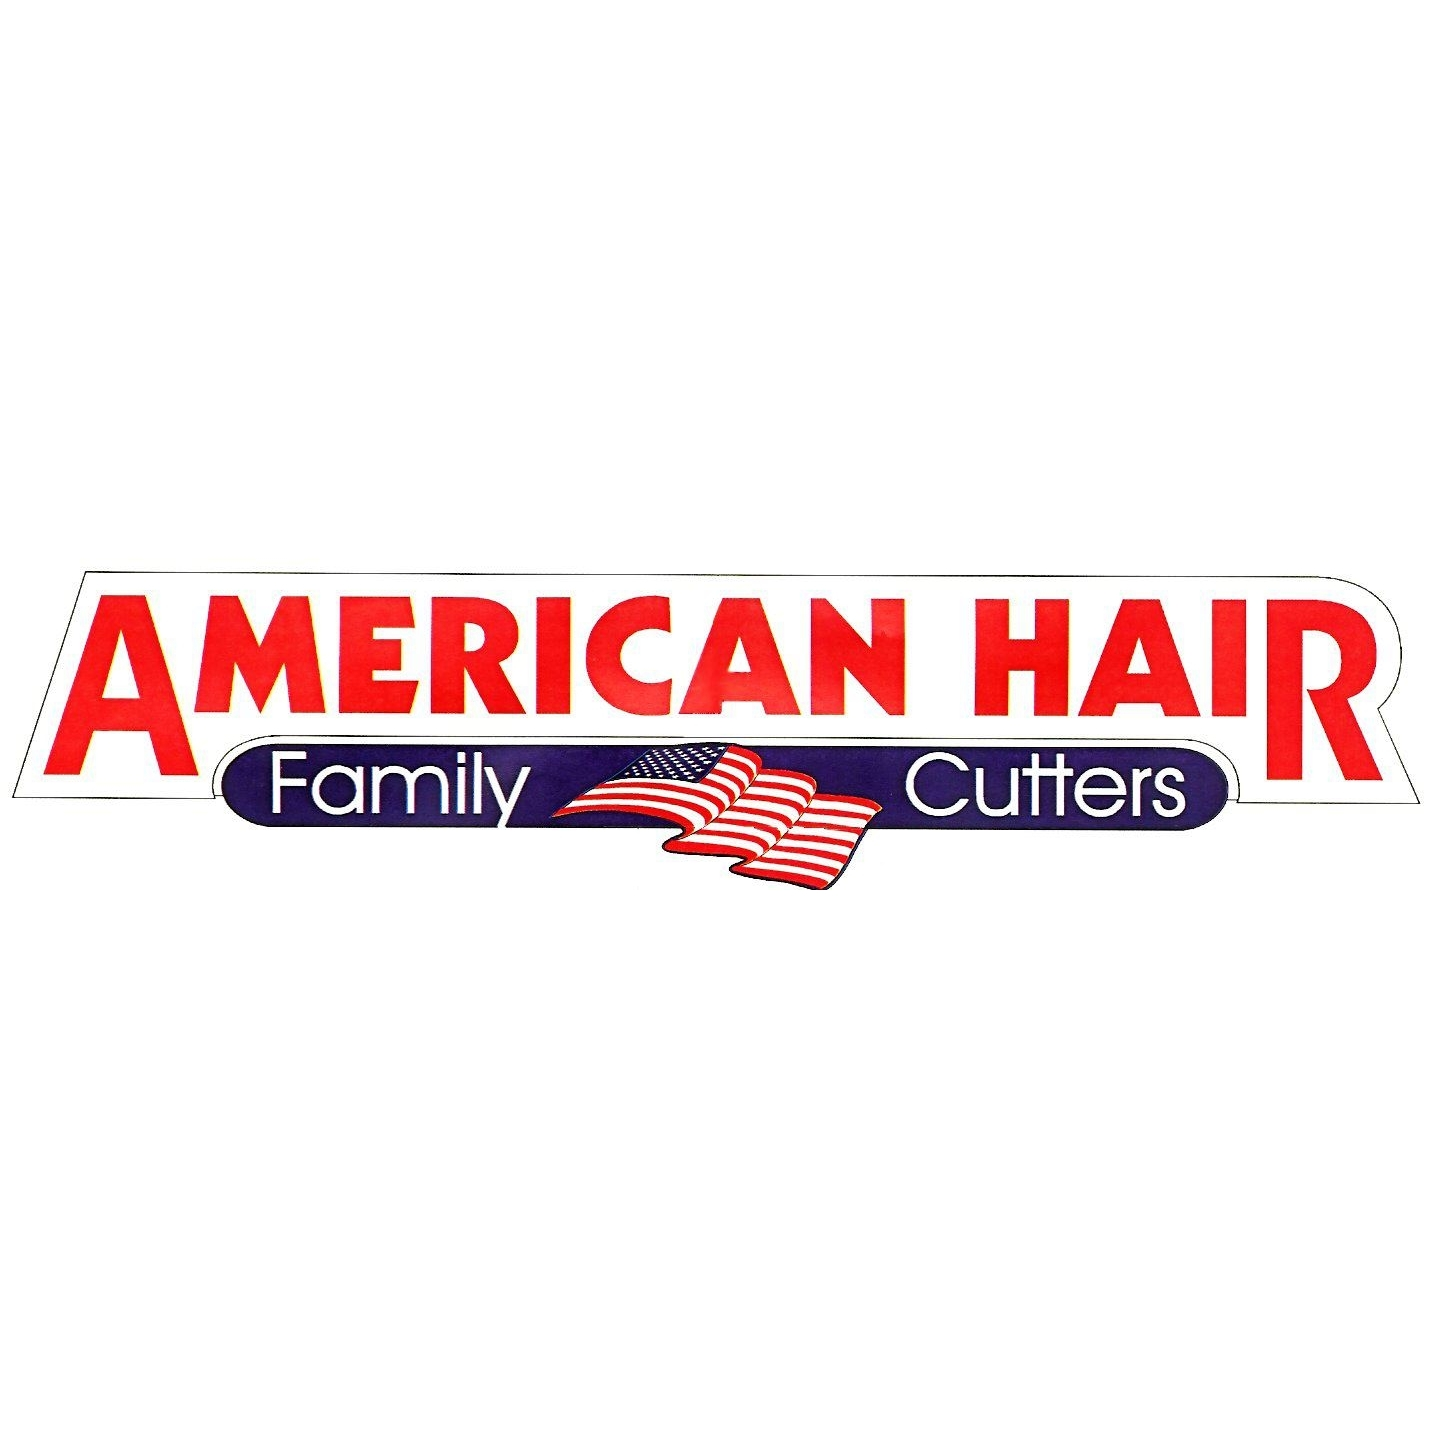 American Hair Family Cutters